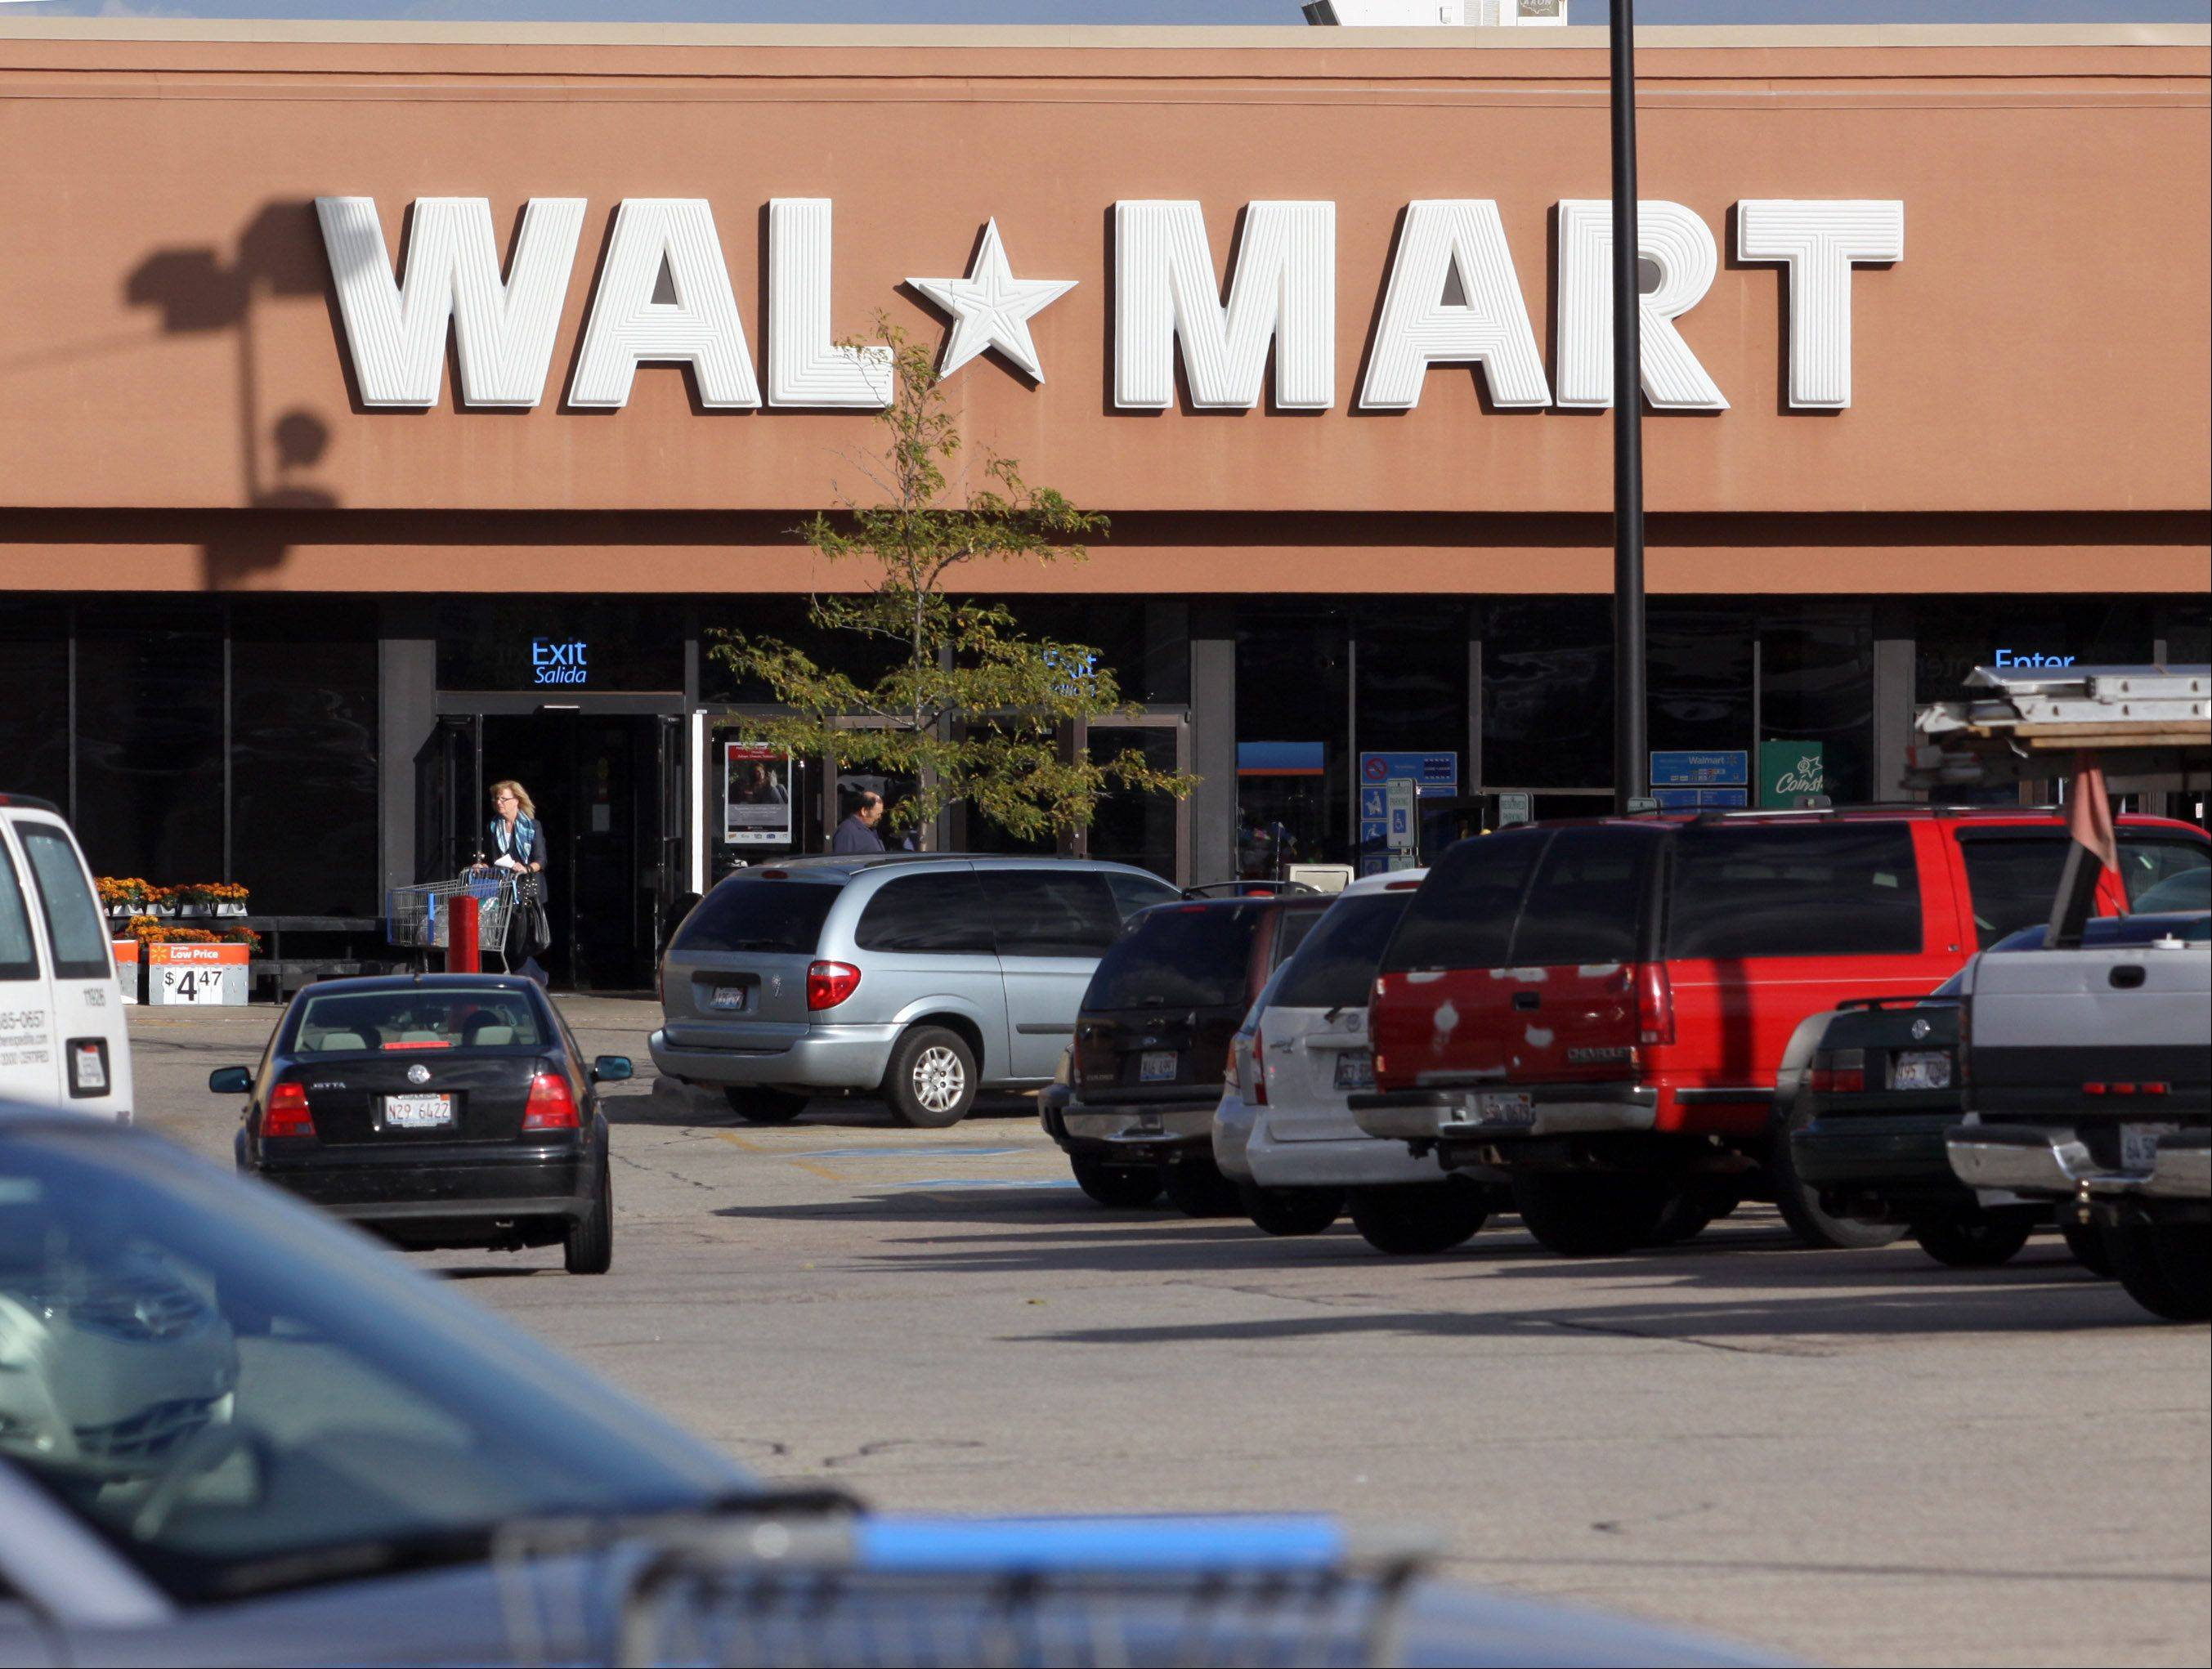 Walmart in East Dundee is located along Route 25 just south of Route 72.